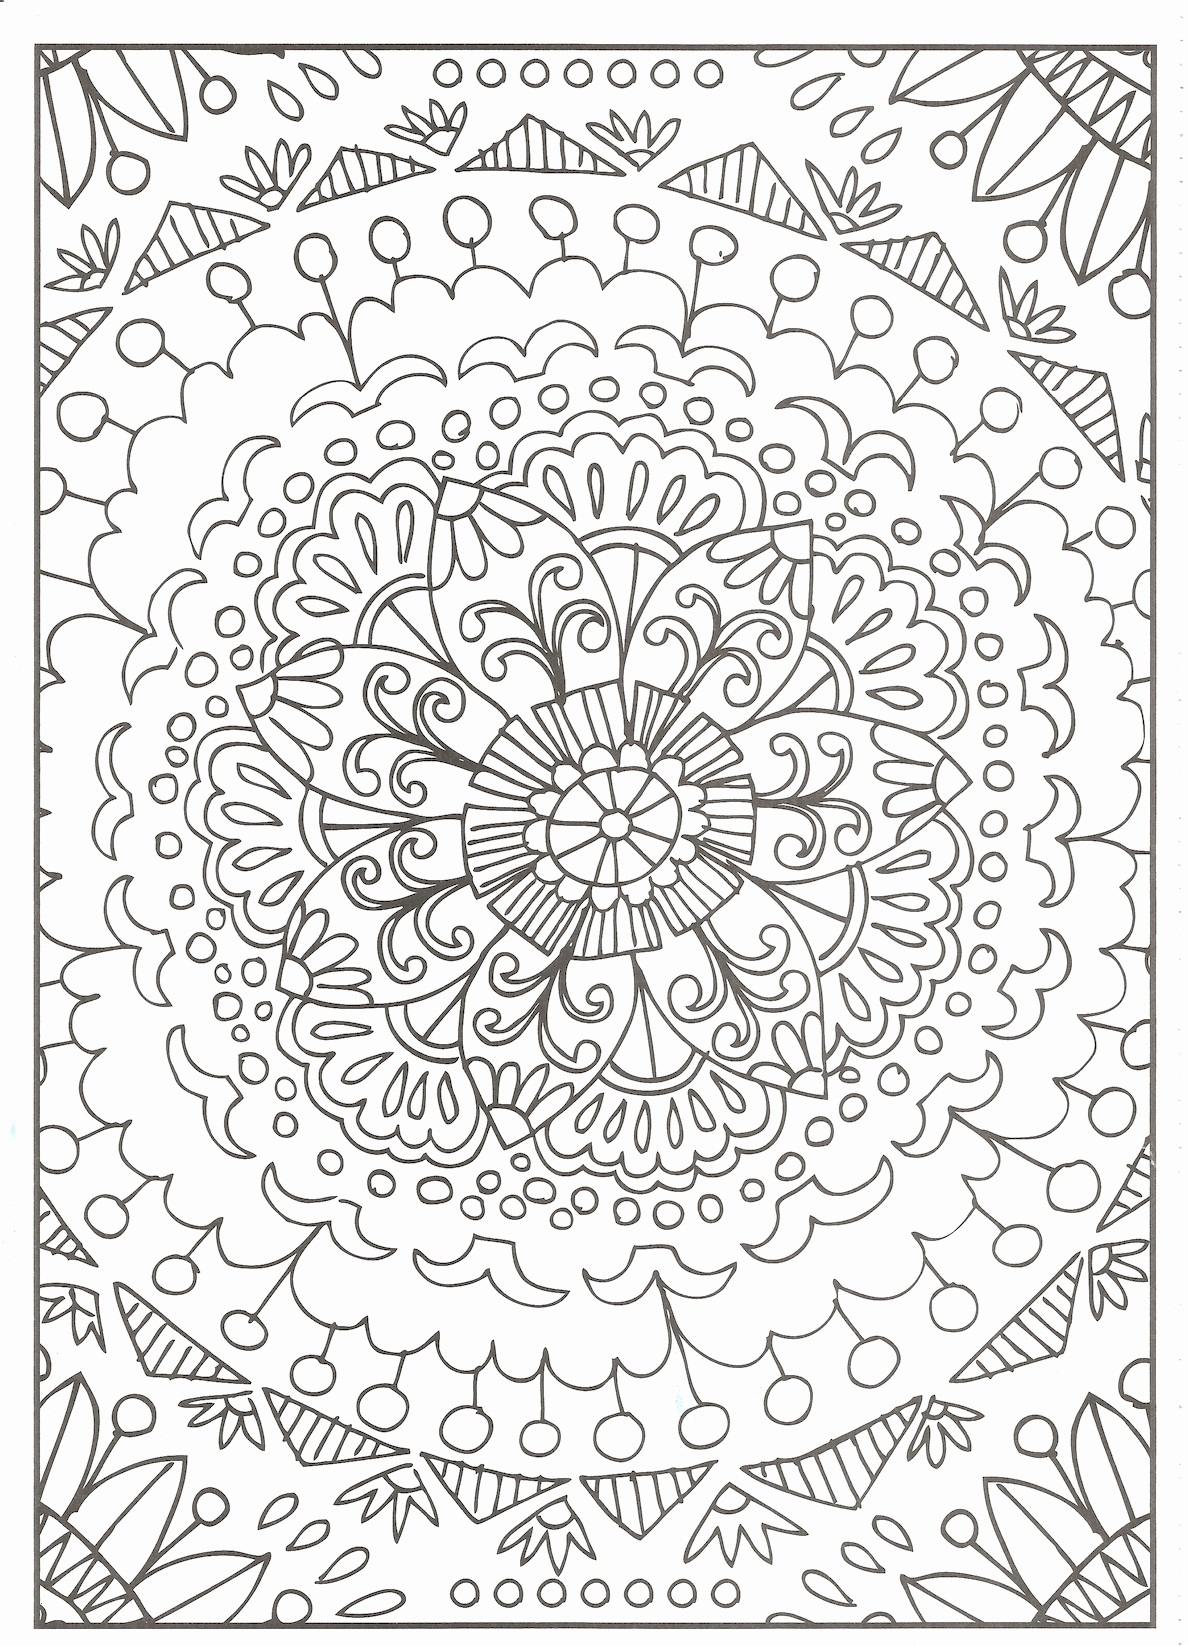 Coloring Pages Family  to Print 3s - Save it to your computer